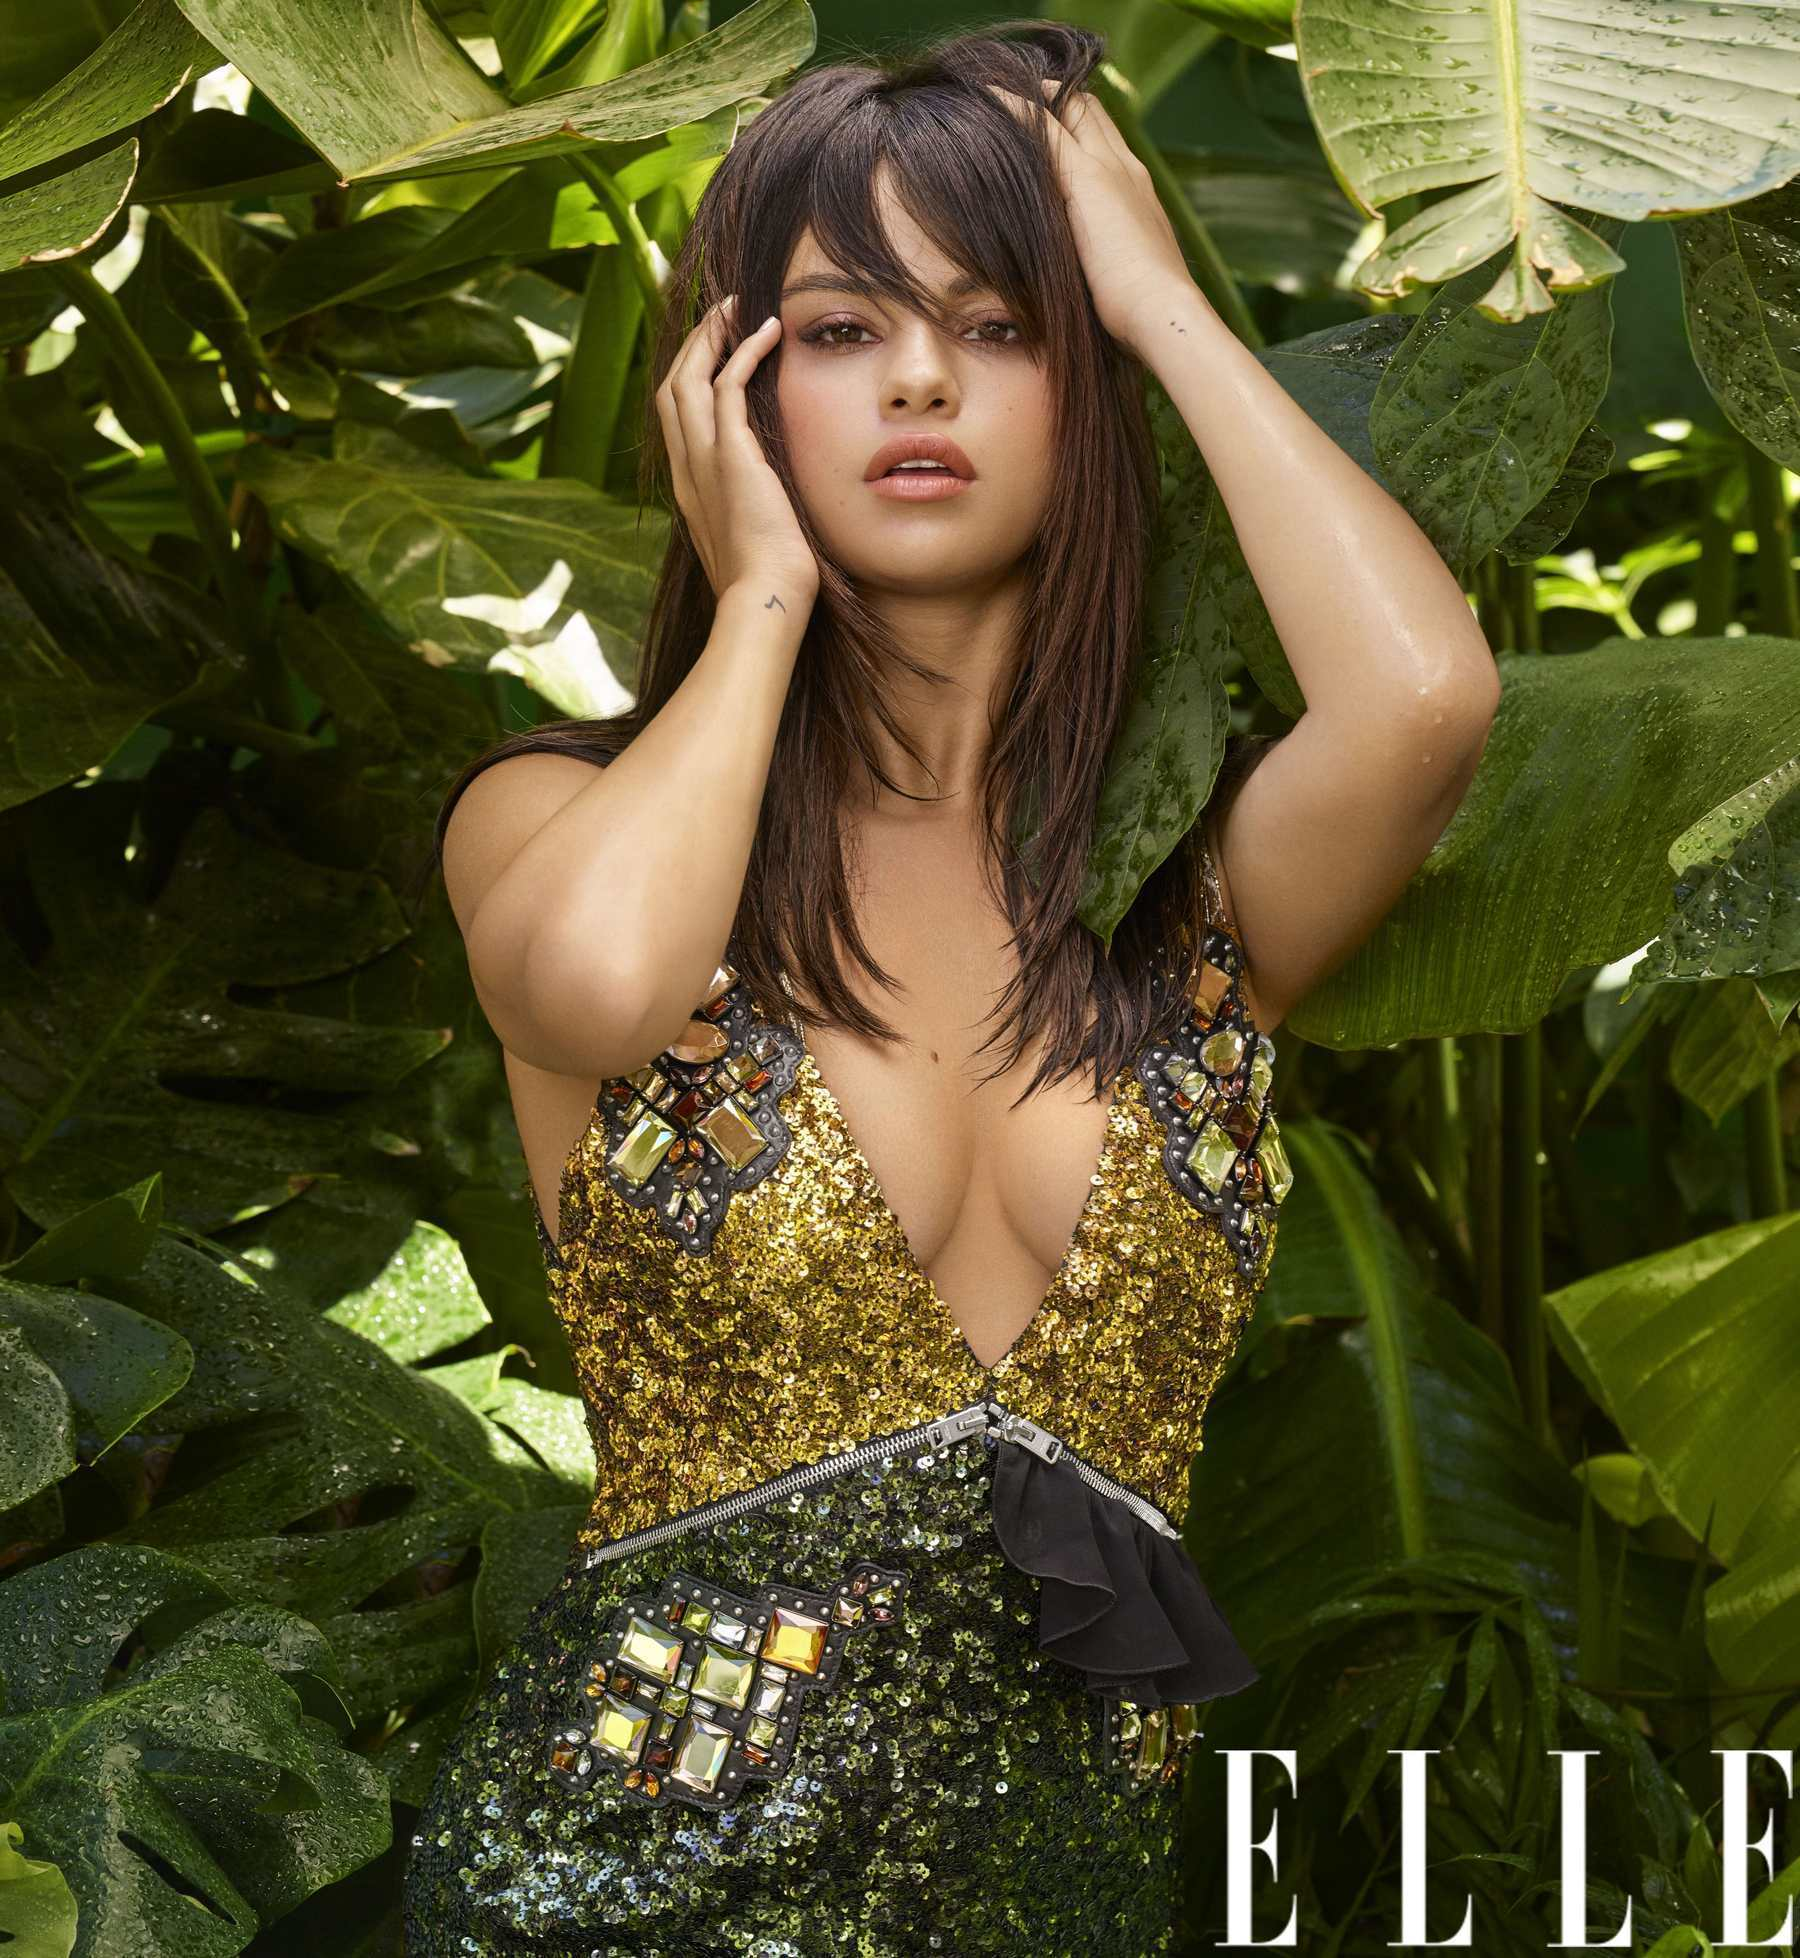 Selena-Gomez-ELLE-UK-By-Mariano-Vivanco-October-2018-IssueSelena-Gomez-ELLE-UK-By-Mariano-Vivanco-.jpg